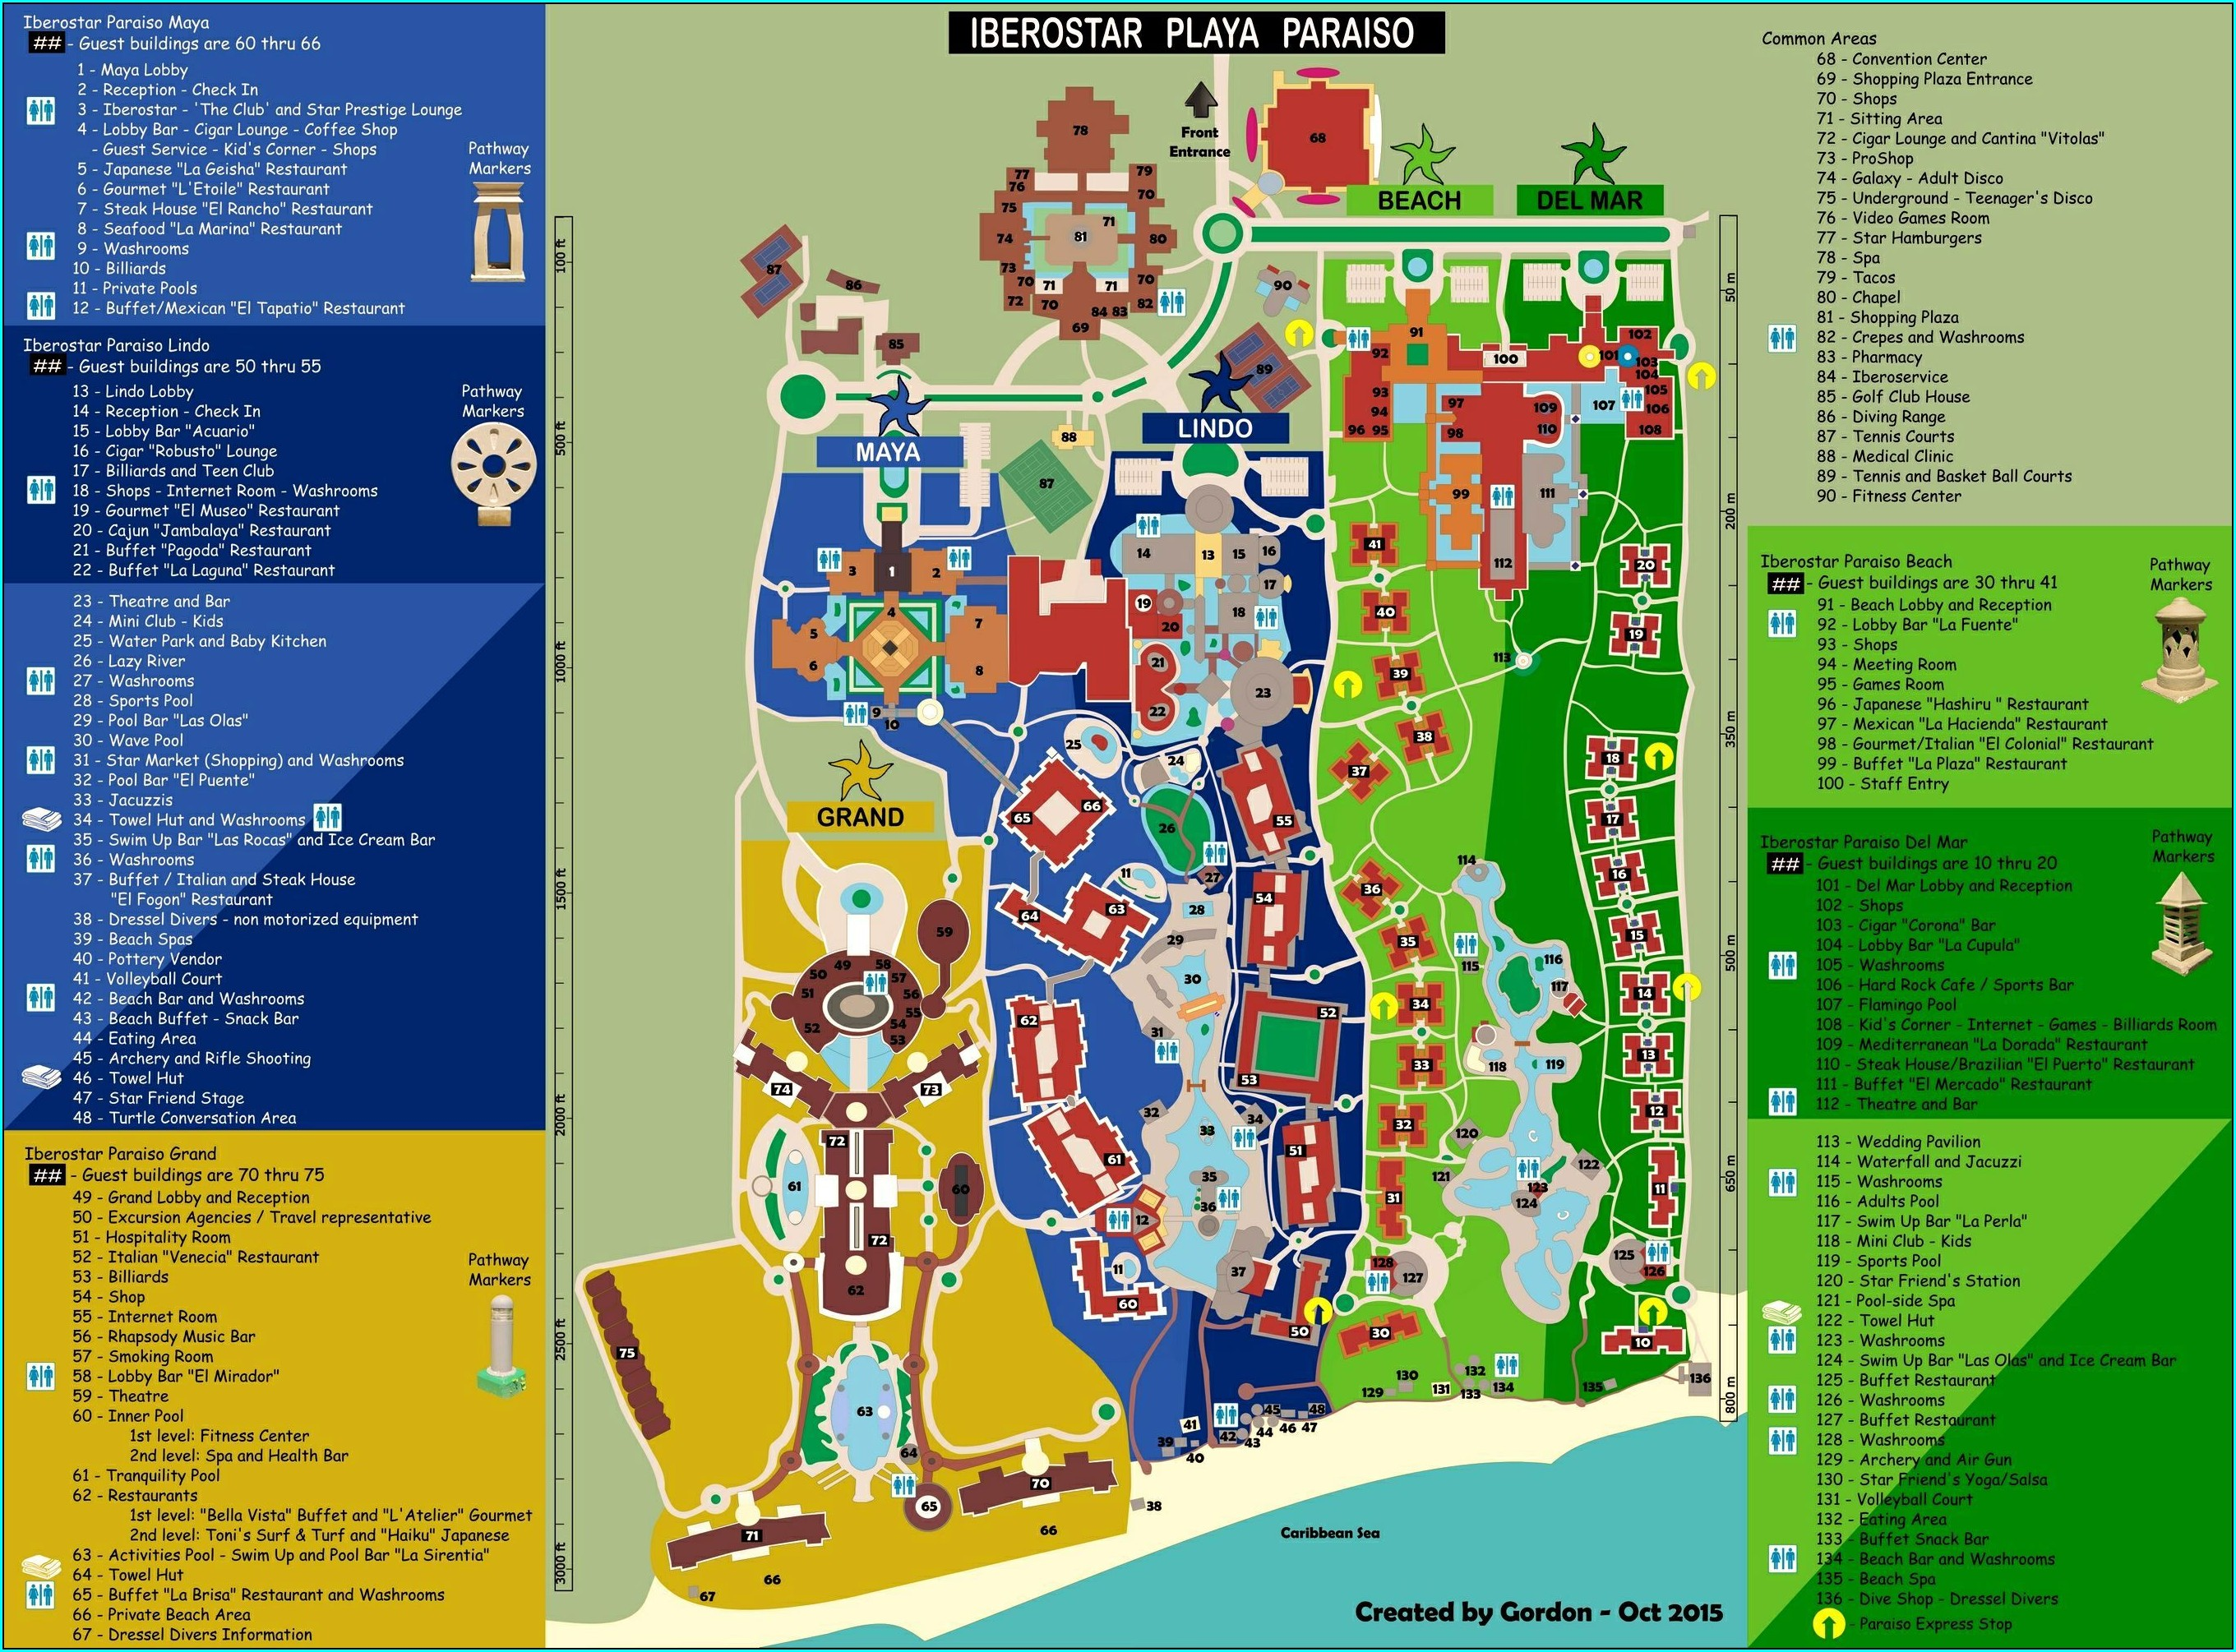 Iberostar Paraiso Lindo Resort Map